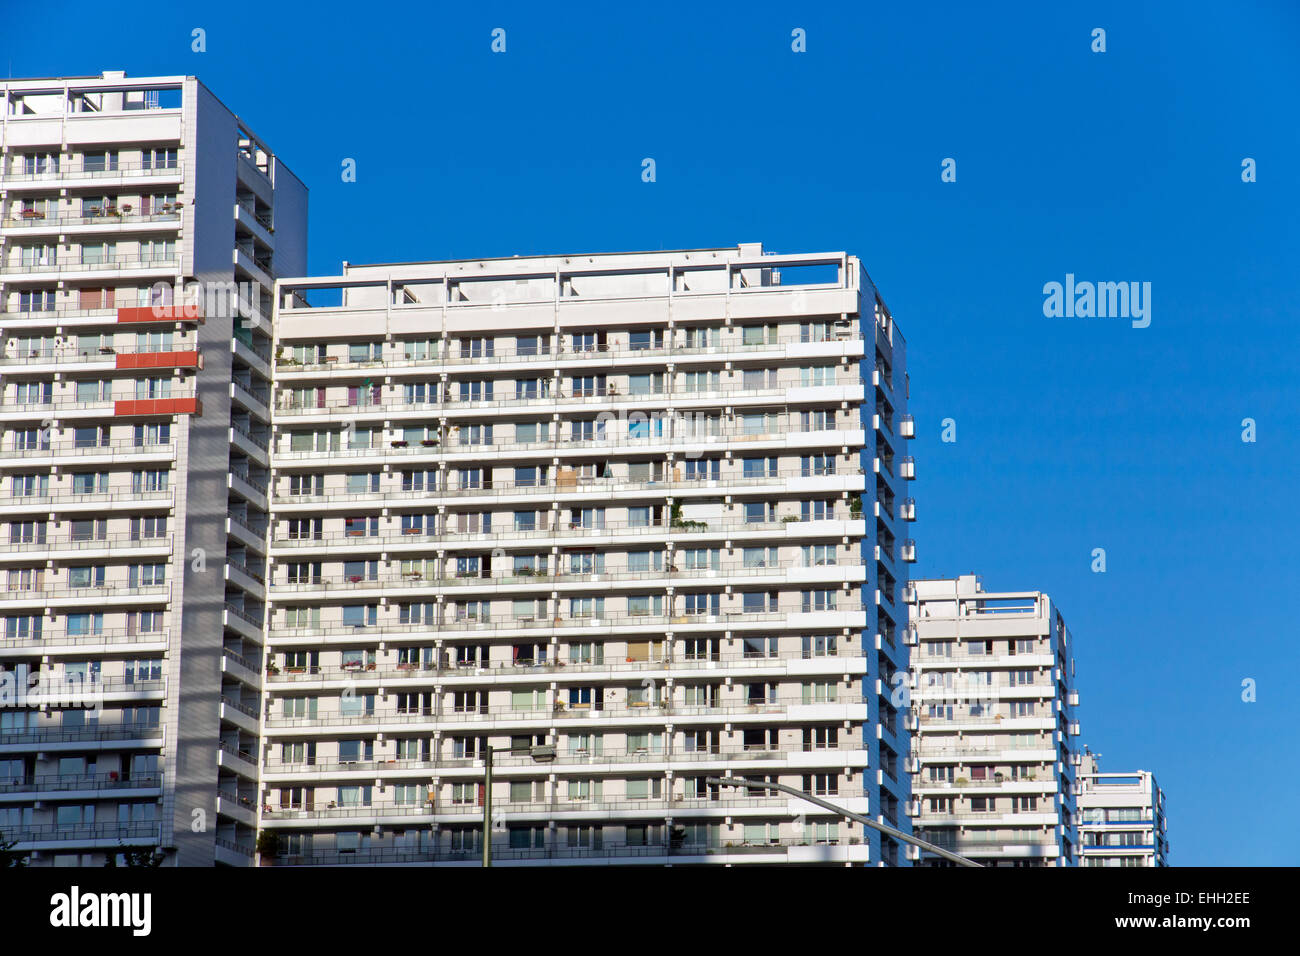 Typical highrise buildings in Berlin Stock Photo